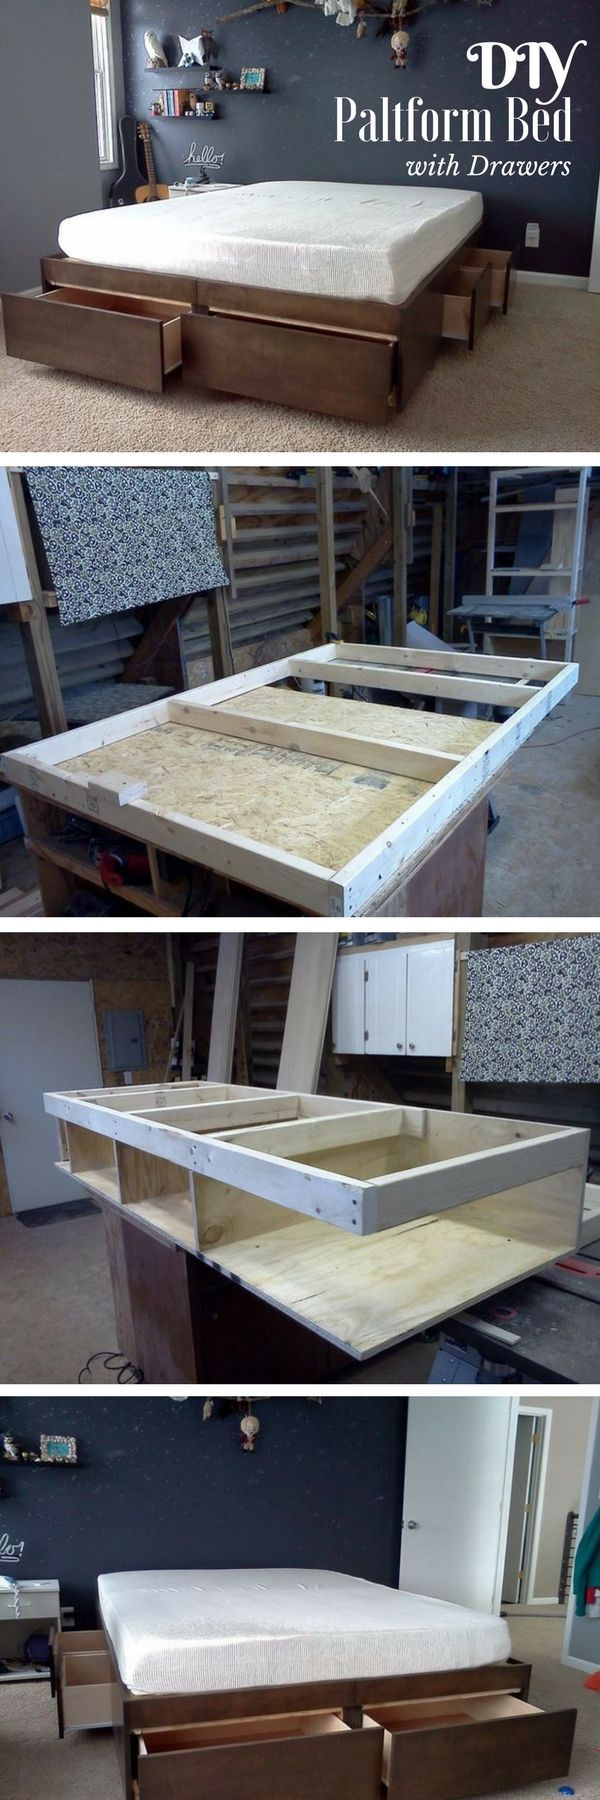 Check out this easy idea on how to build a #DIY platform bed with drawers for #bedroom #homedecor #budget #project @istandarddesign